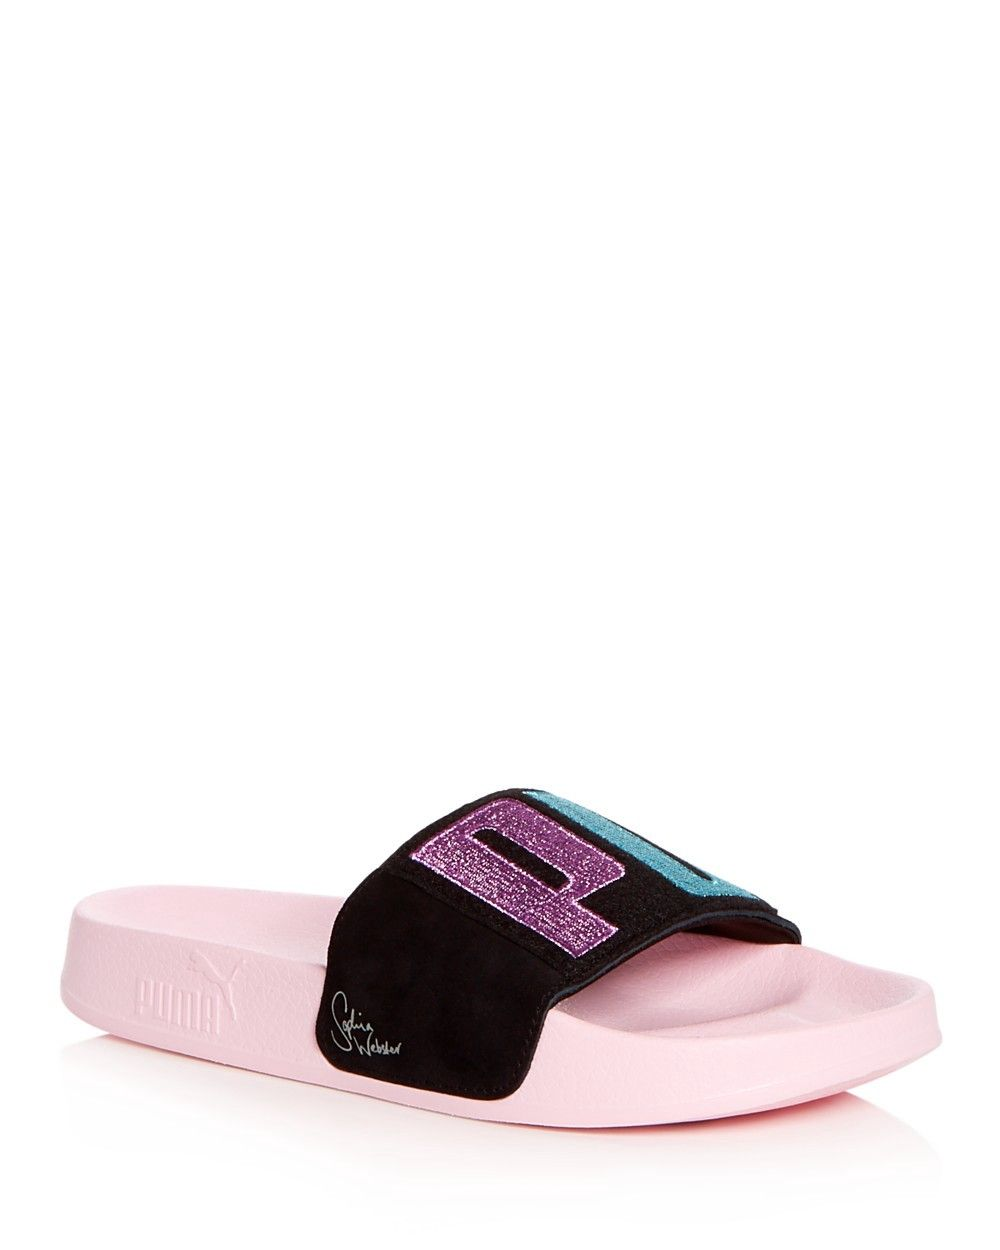 PUMA PUMA x Sophia Webster Women s Leadcat Embroidered Suede Pool Slide  Sandals.  puma  shoes   3ca81bf41